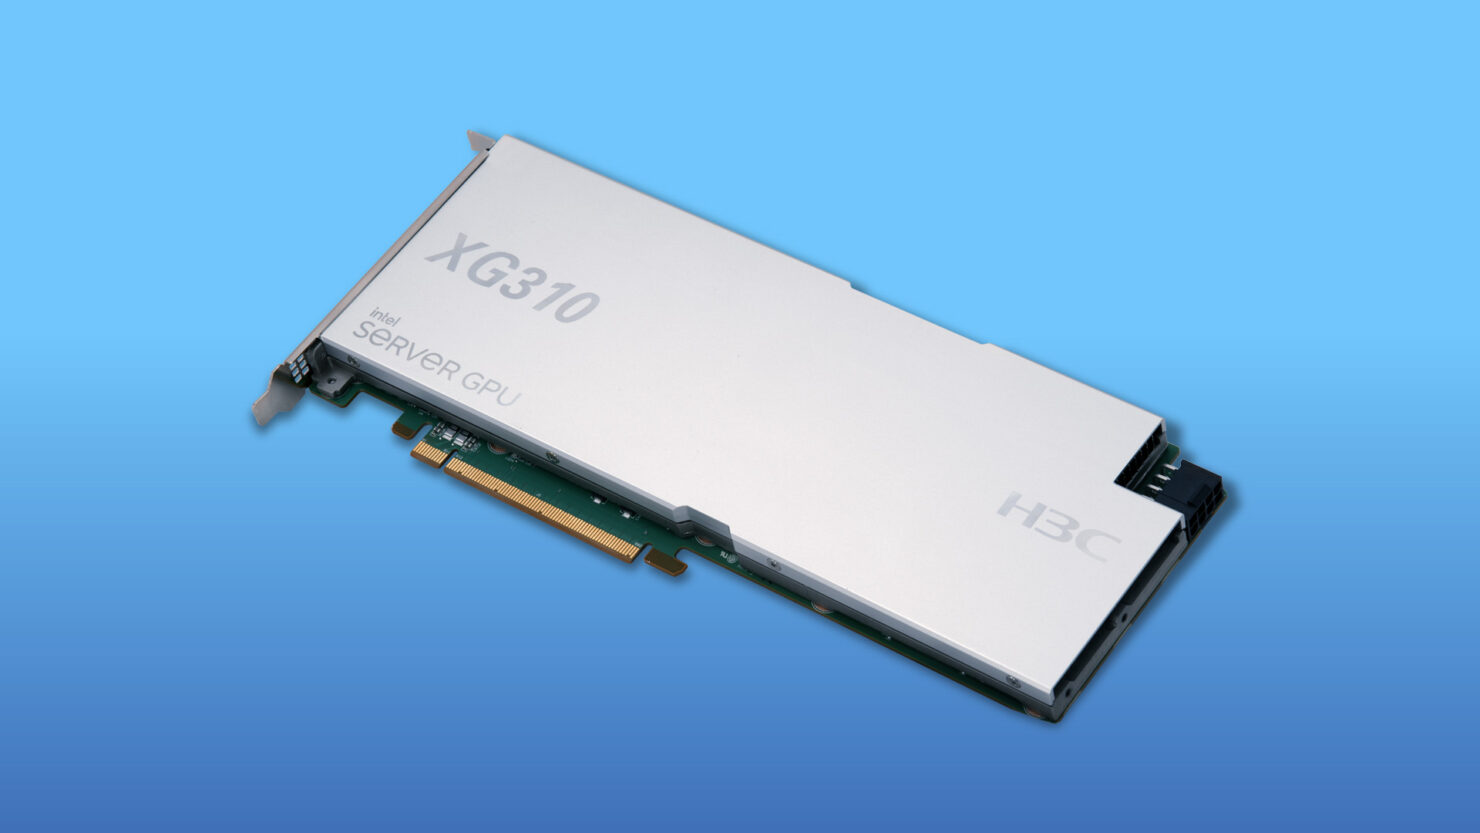 h3c-xg310-pcie-card-front-angle